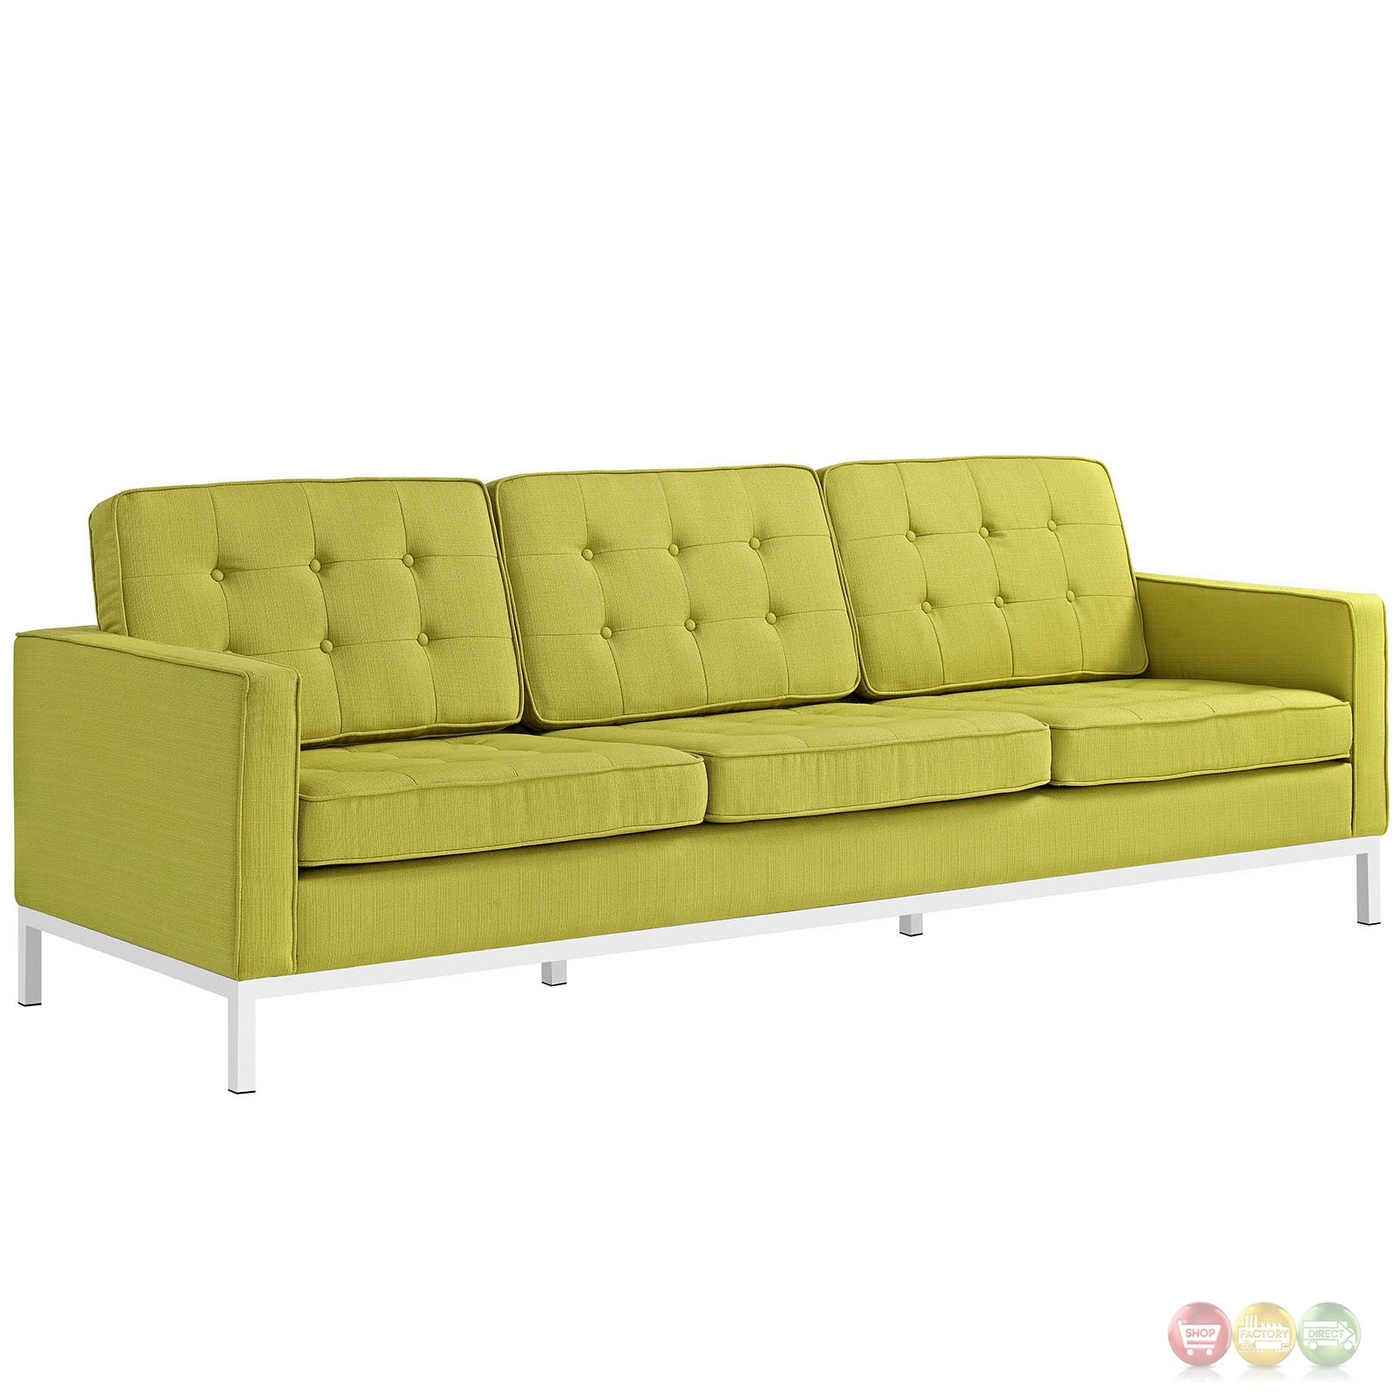 Loft Modern 2pc Upholstered Button Tufted Sofa Loveseat Set Wheatgrass